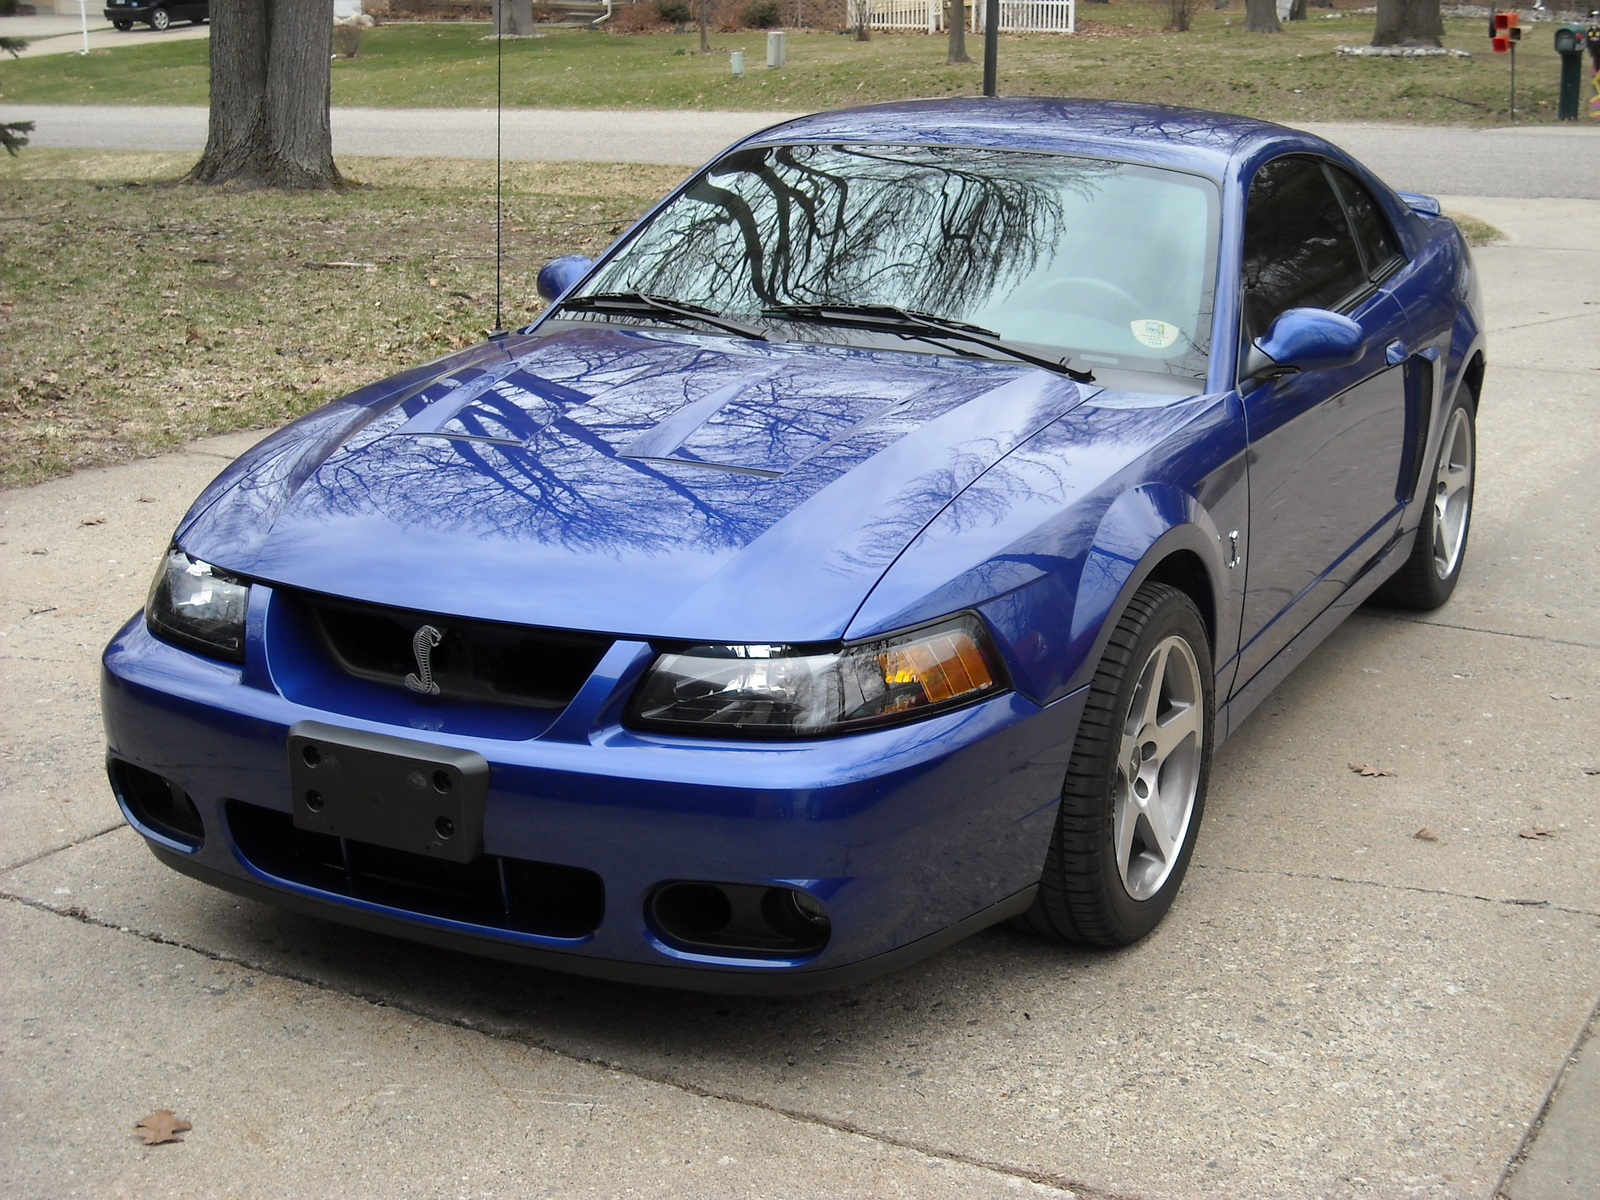 2003 Ford Mustang SVT Cobra - Exterior Pictures - CarGurus